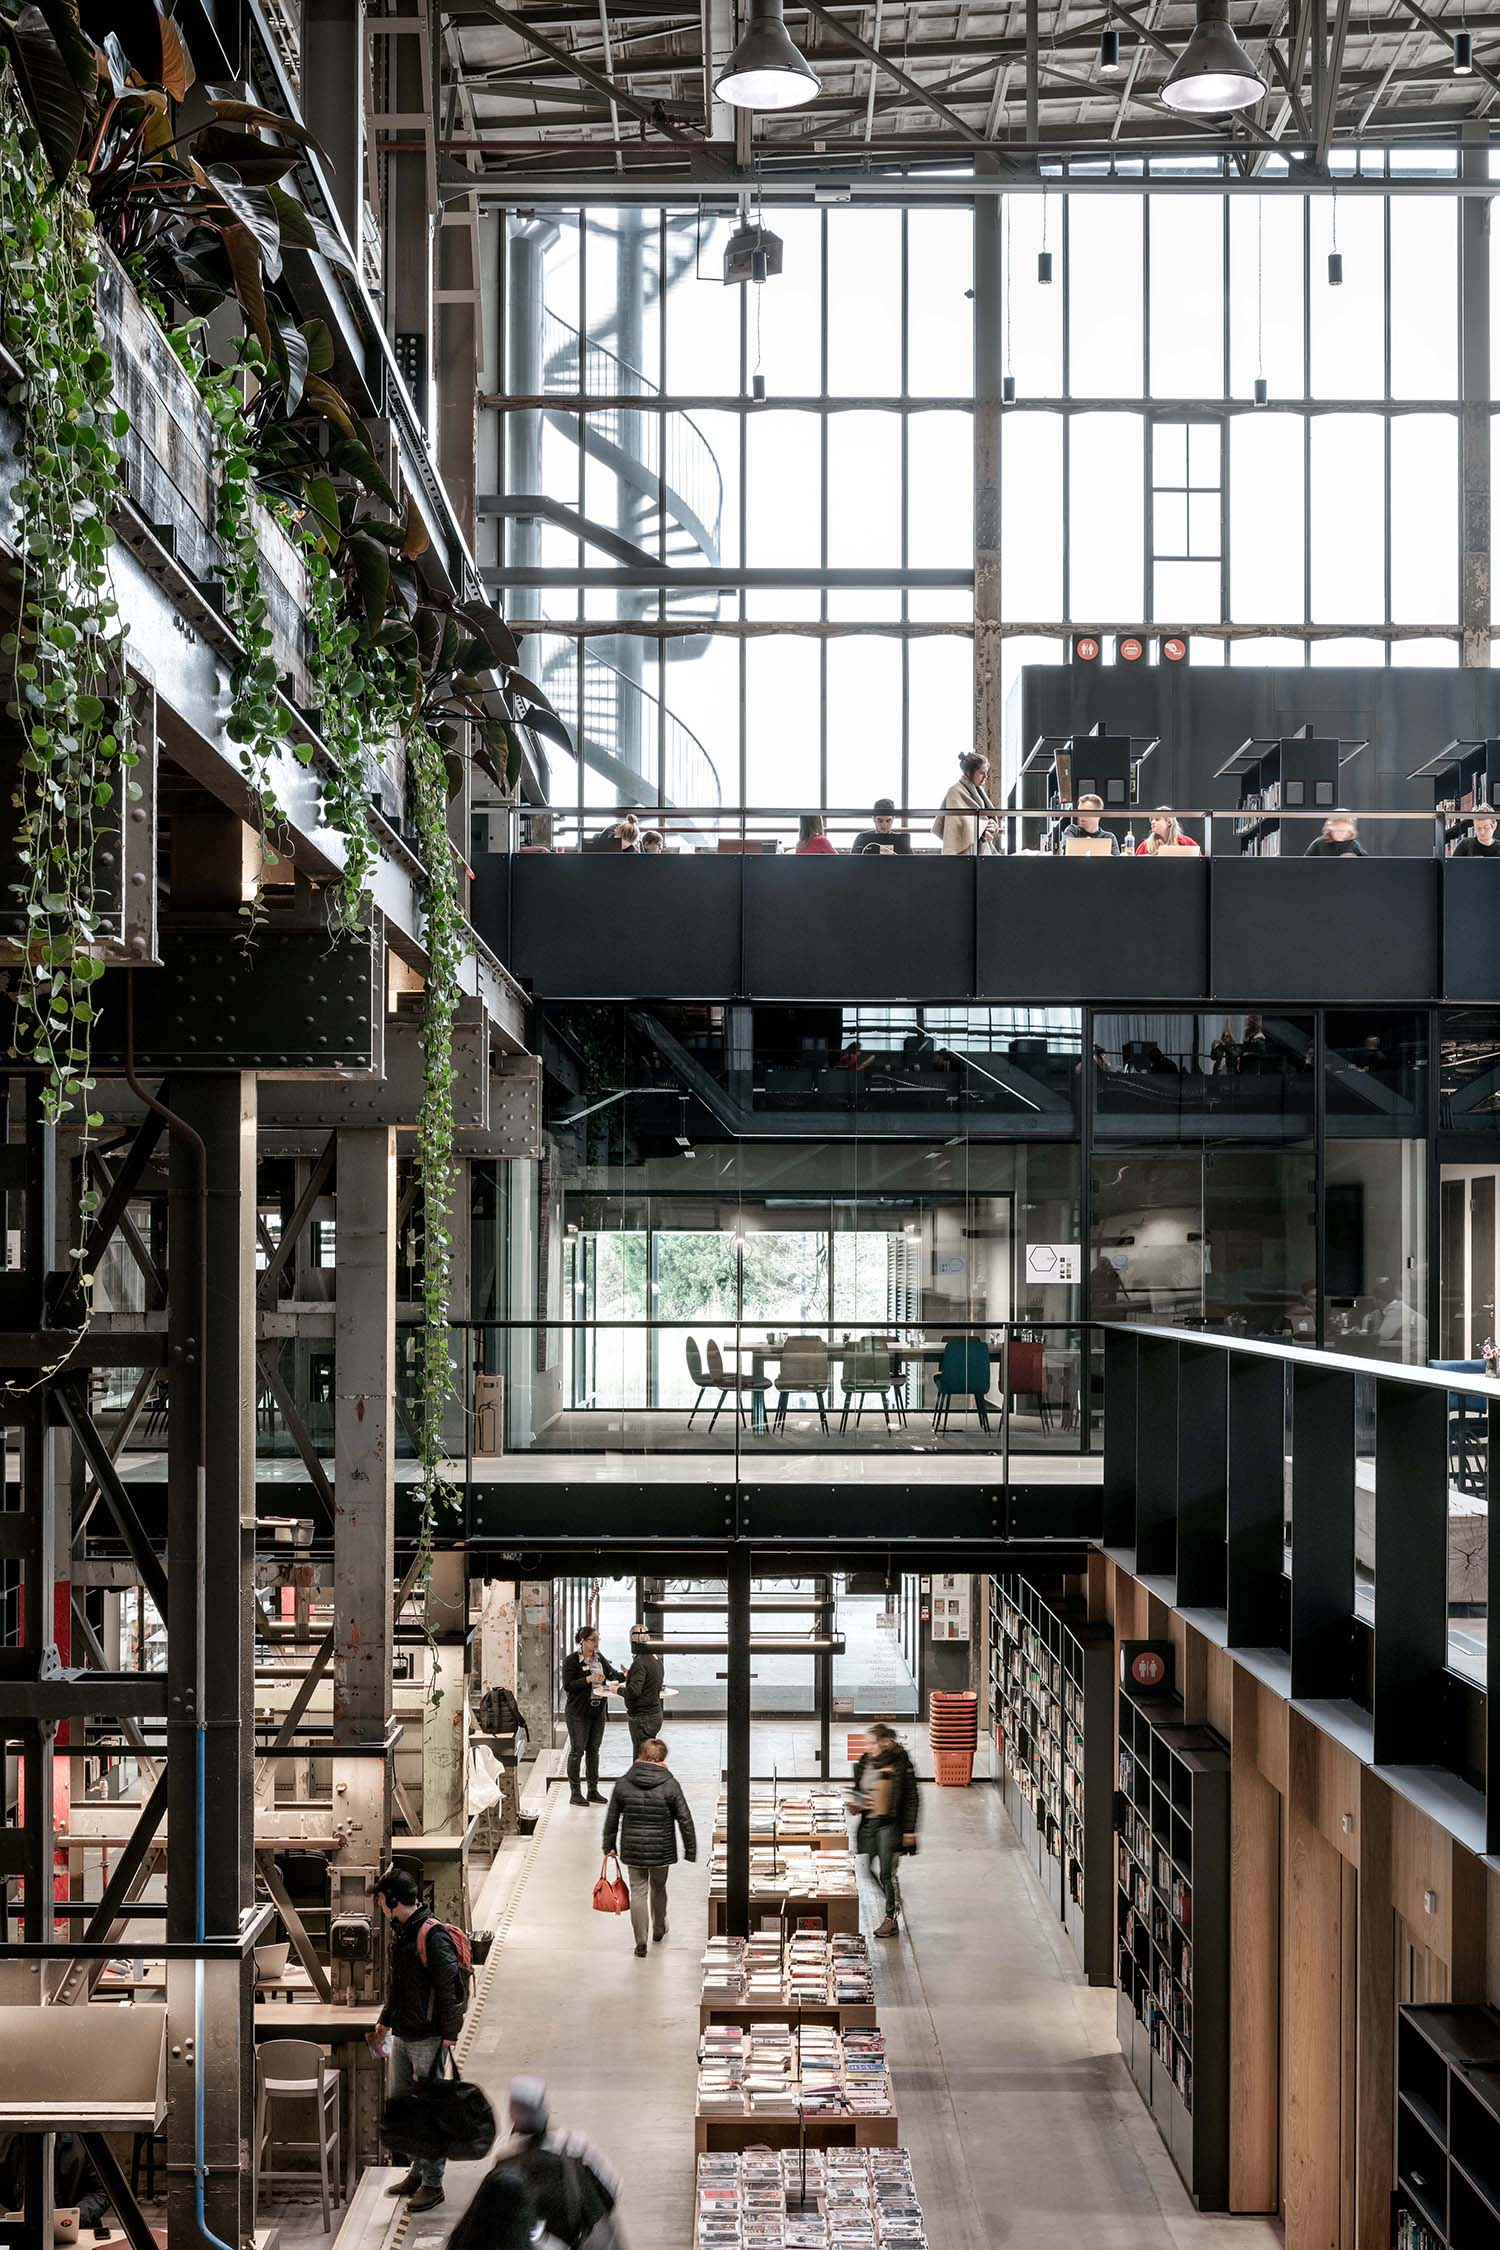 Details in wood and green in the interior contrast with the roughness of the building. Stijn Bollaert